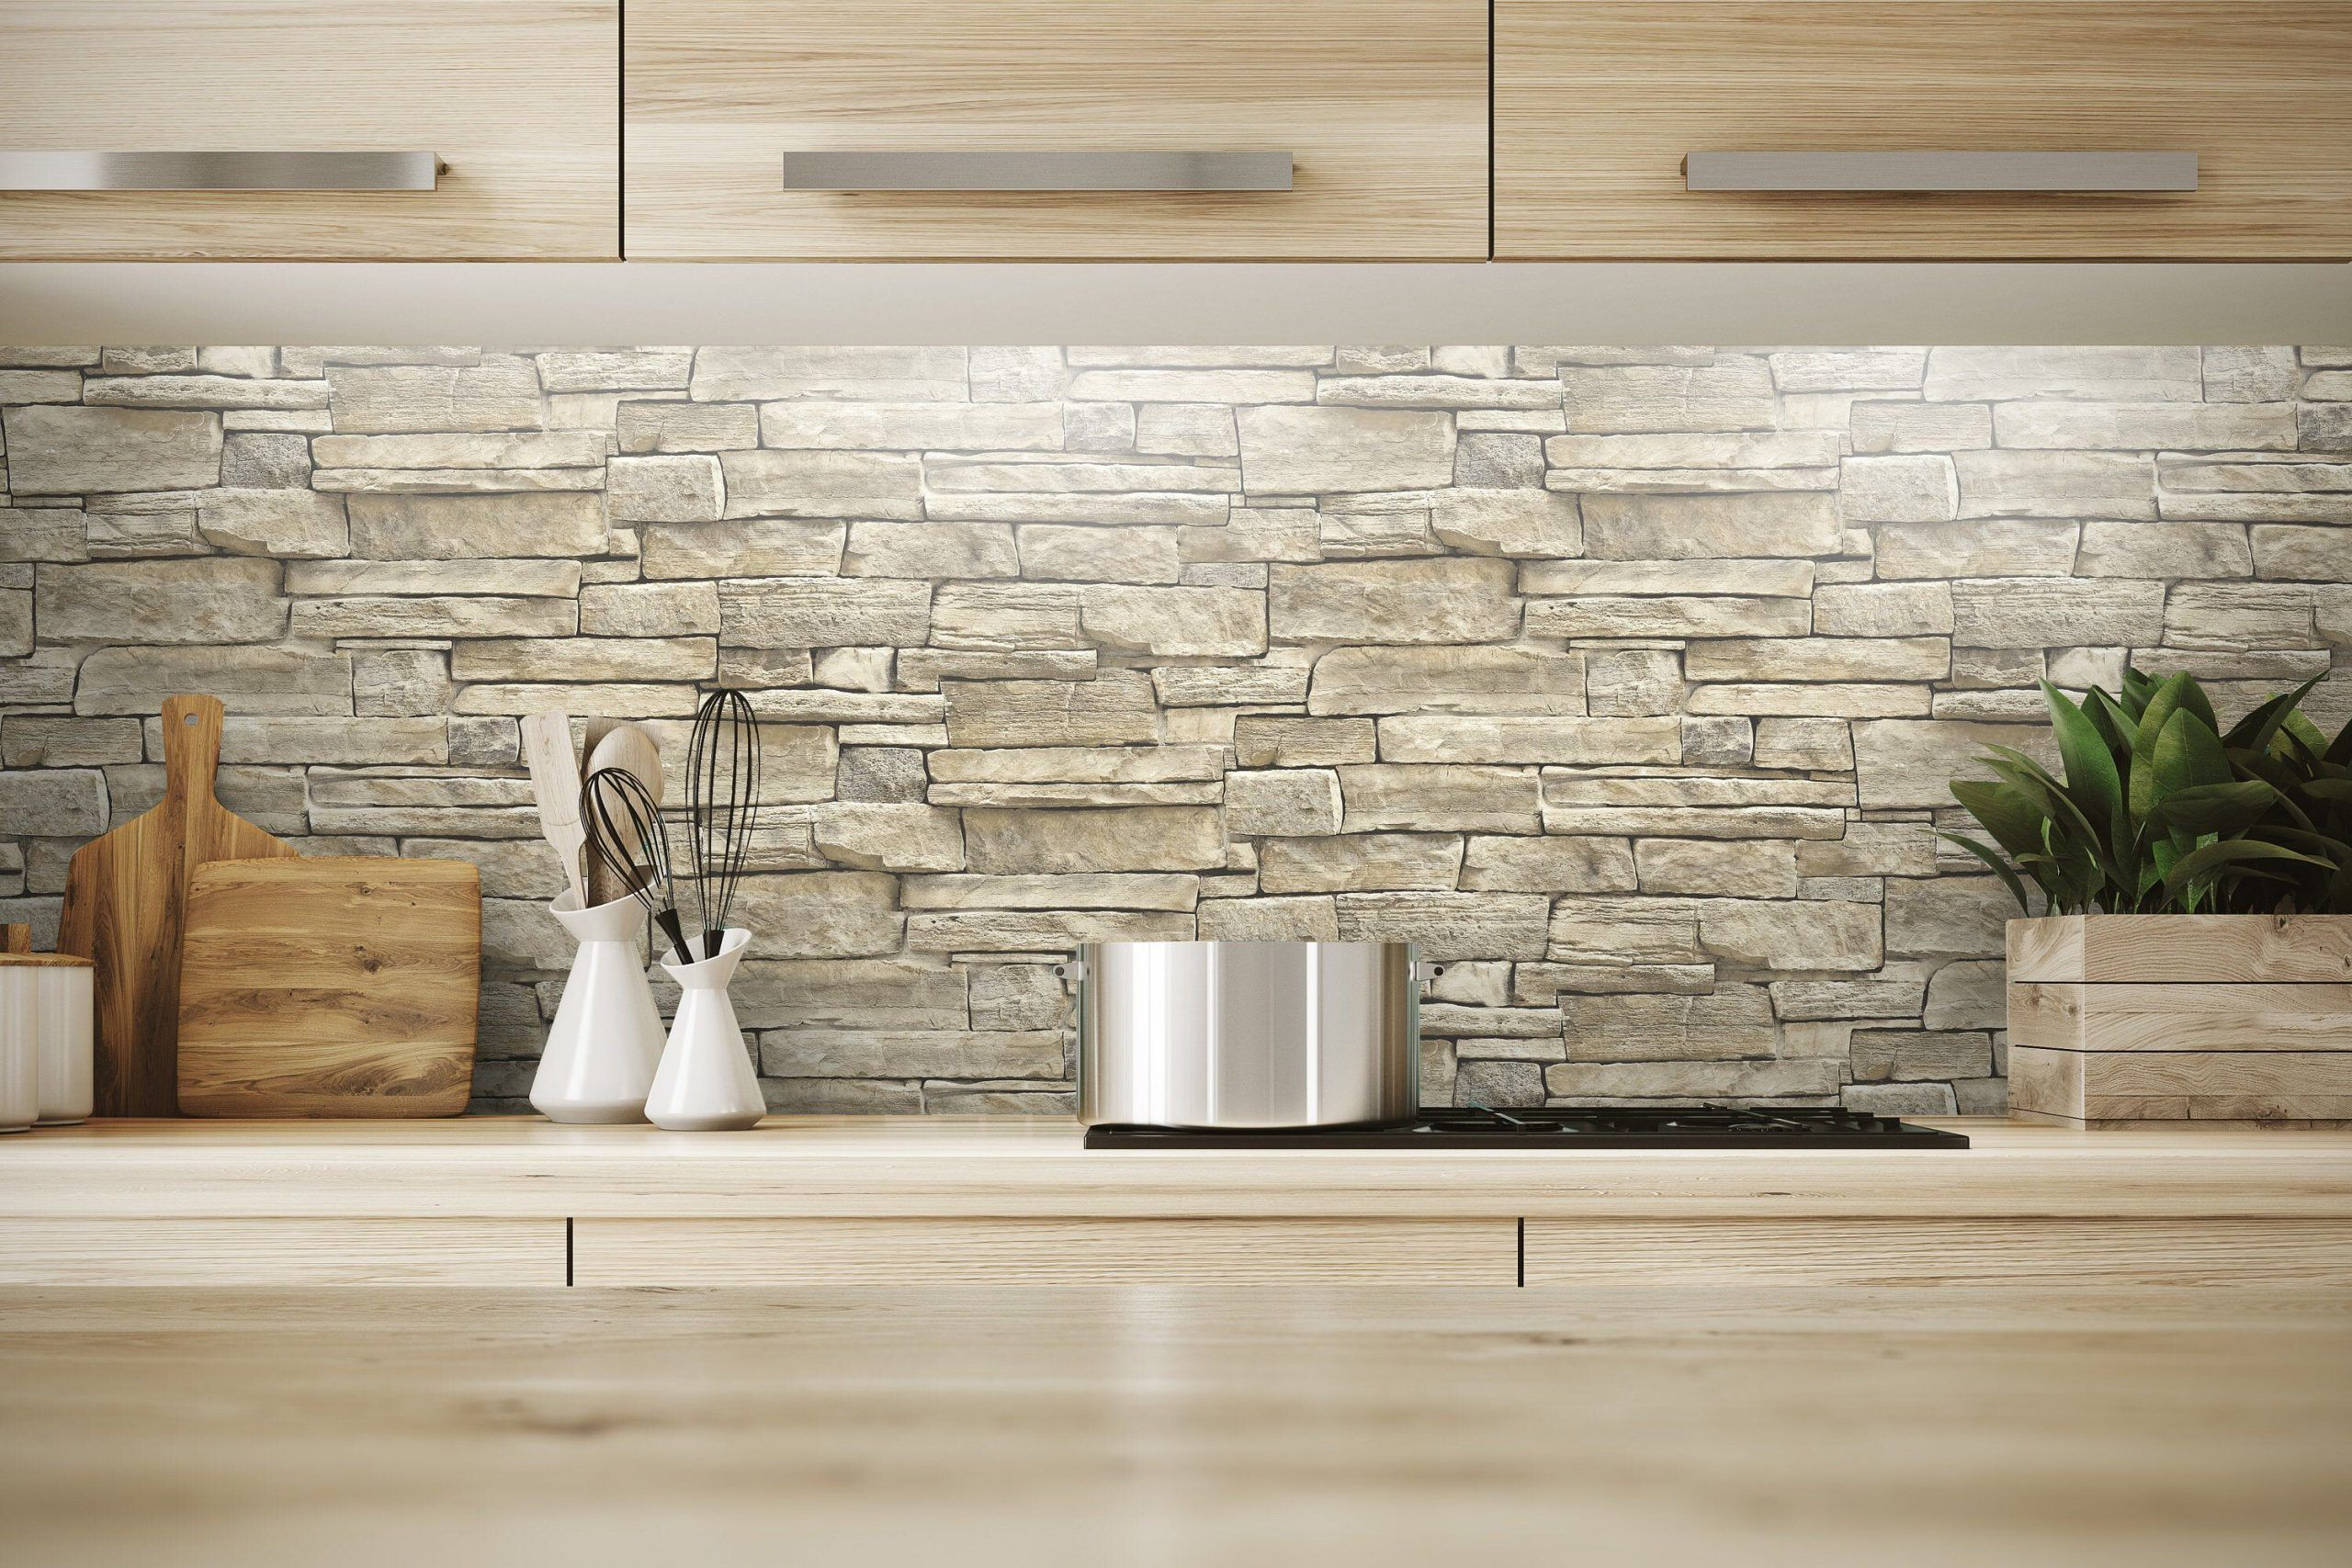 Gray Brick Peel And Stick Wallpaper Bathroom Waterproof Kitchen Backsplash Washable Self Adhesiv In 2020 Peel And Stick Wallpaper Kitchen Wallpaper Peel And Stick Wood